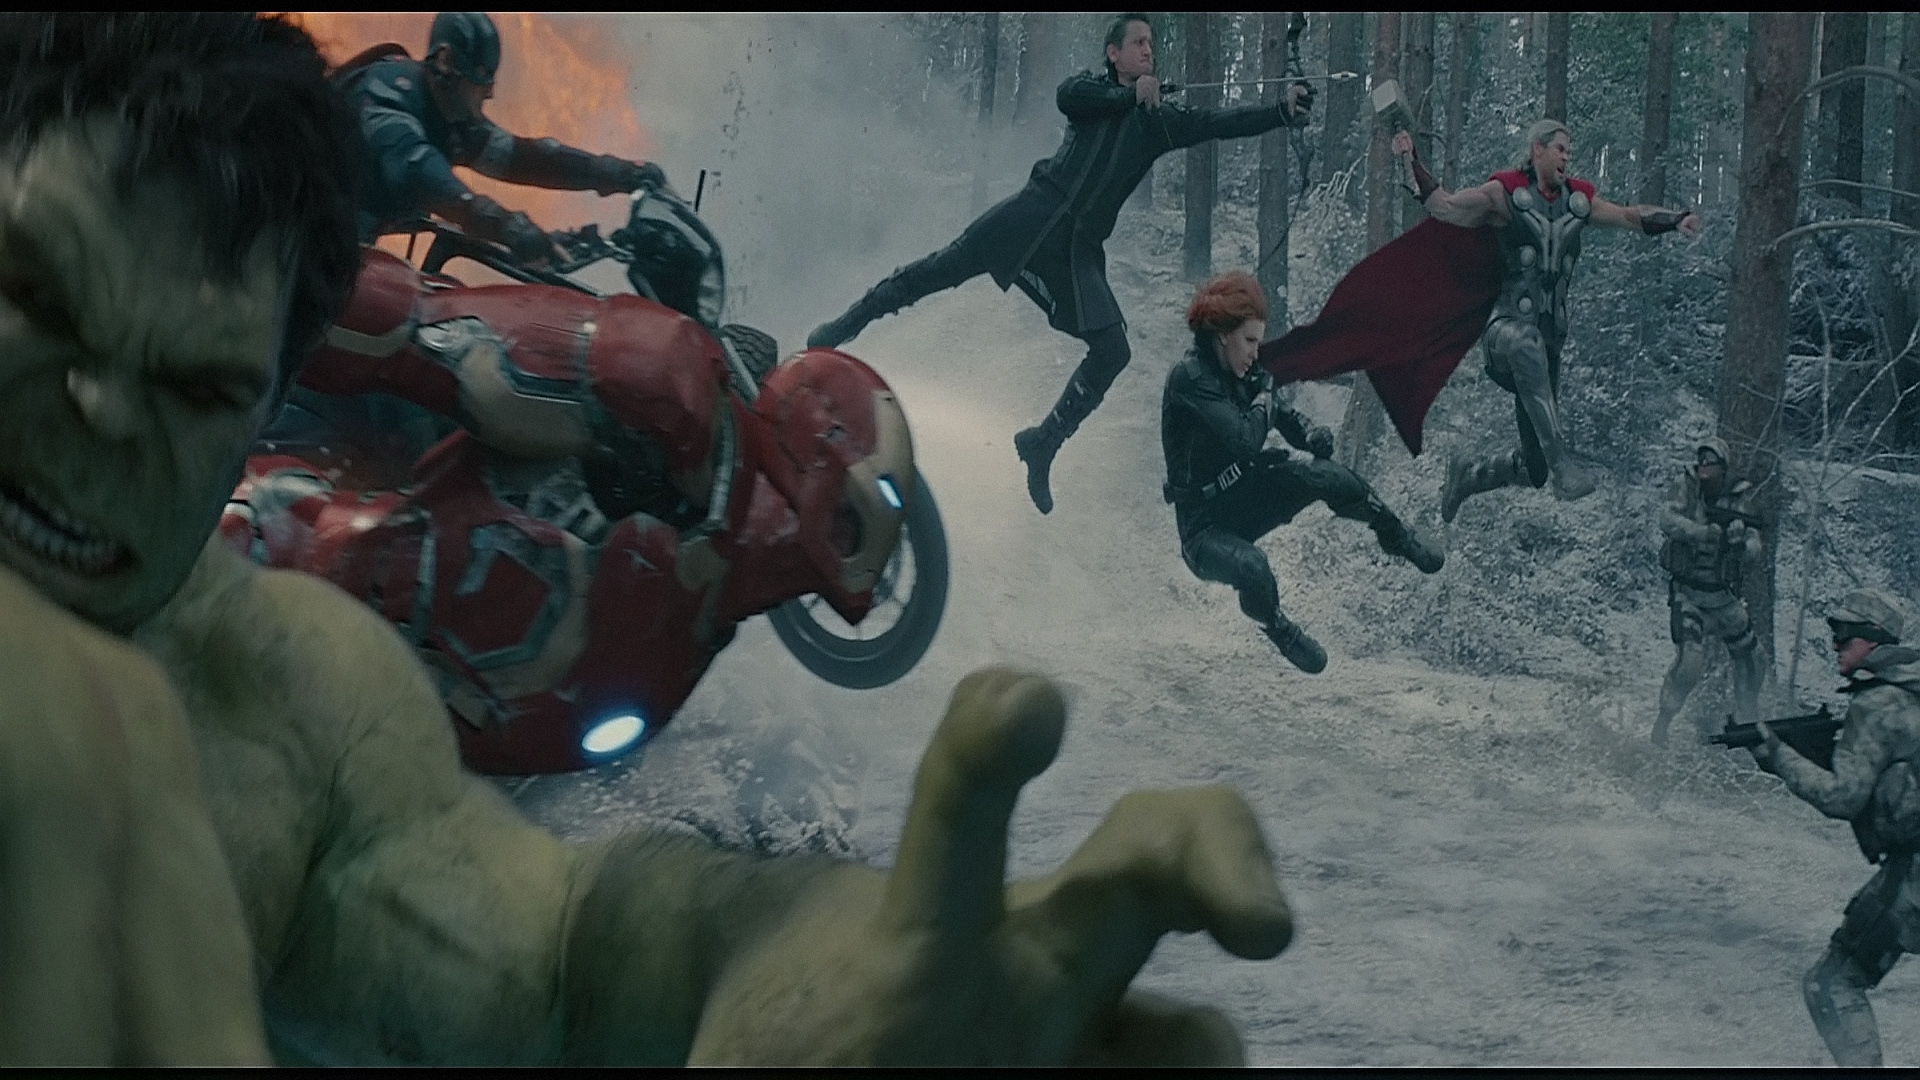 Age Of Ultron wallpapers 1920x1080 Movie Wallpapers 1920x1080